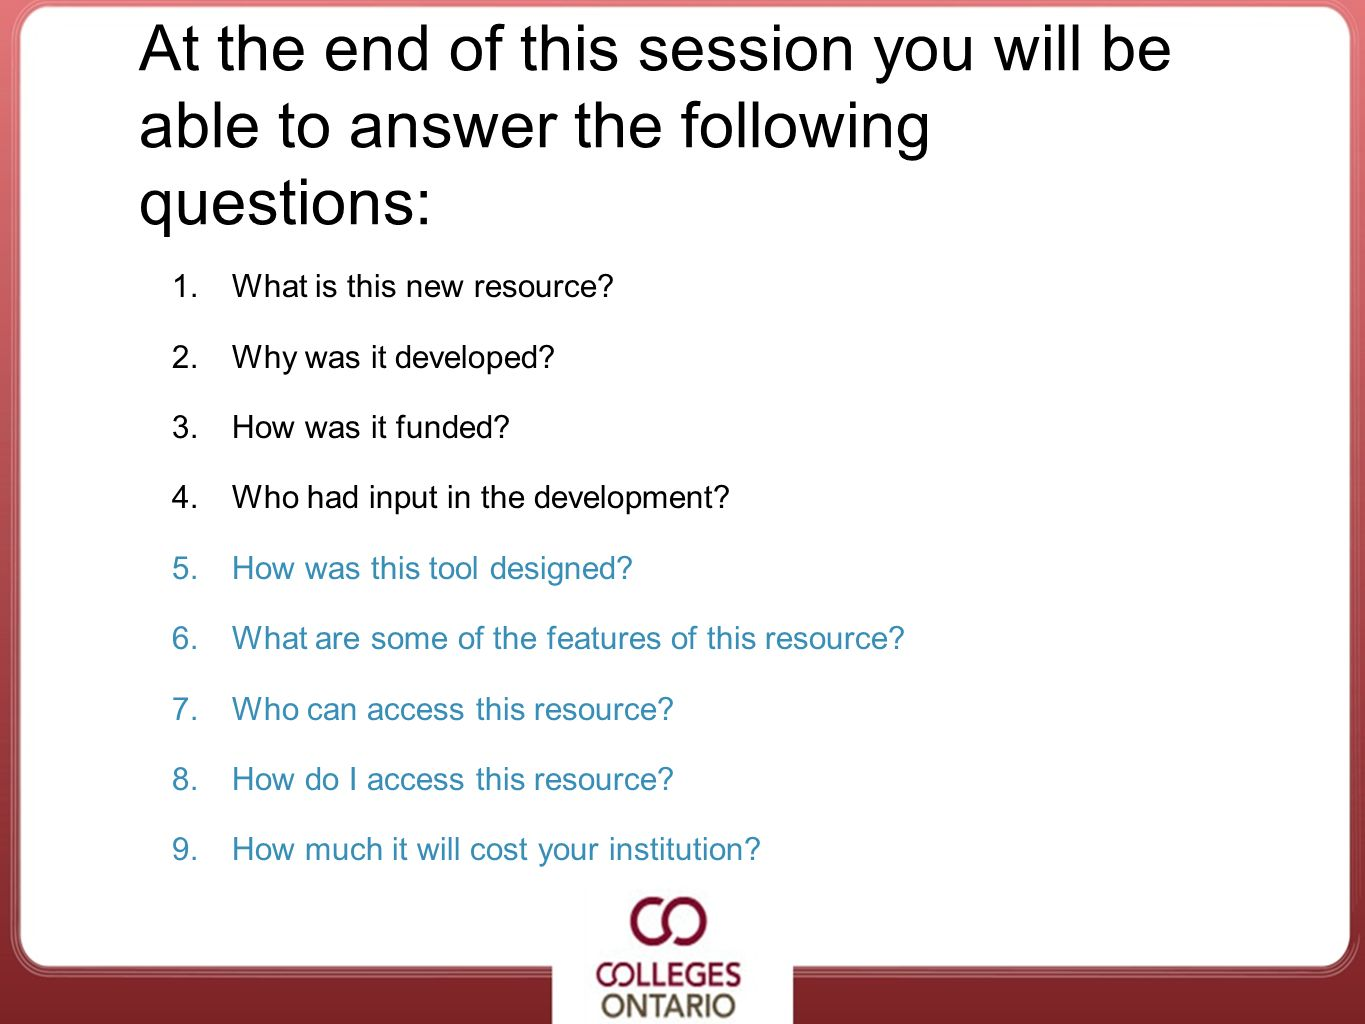 At the end of this session you will be able to answer the following questions: